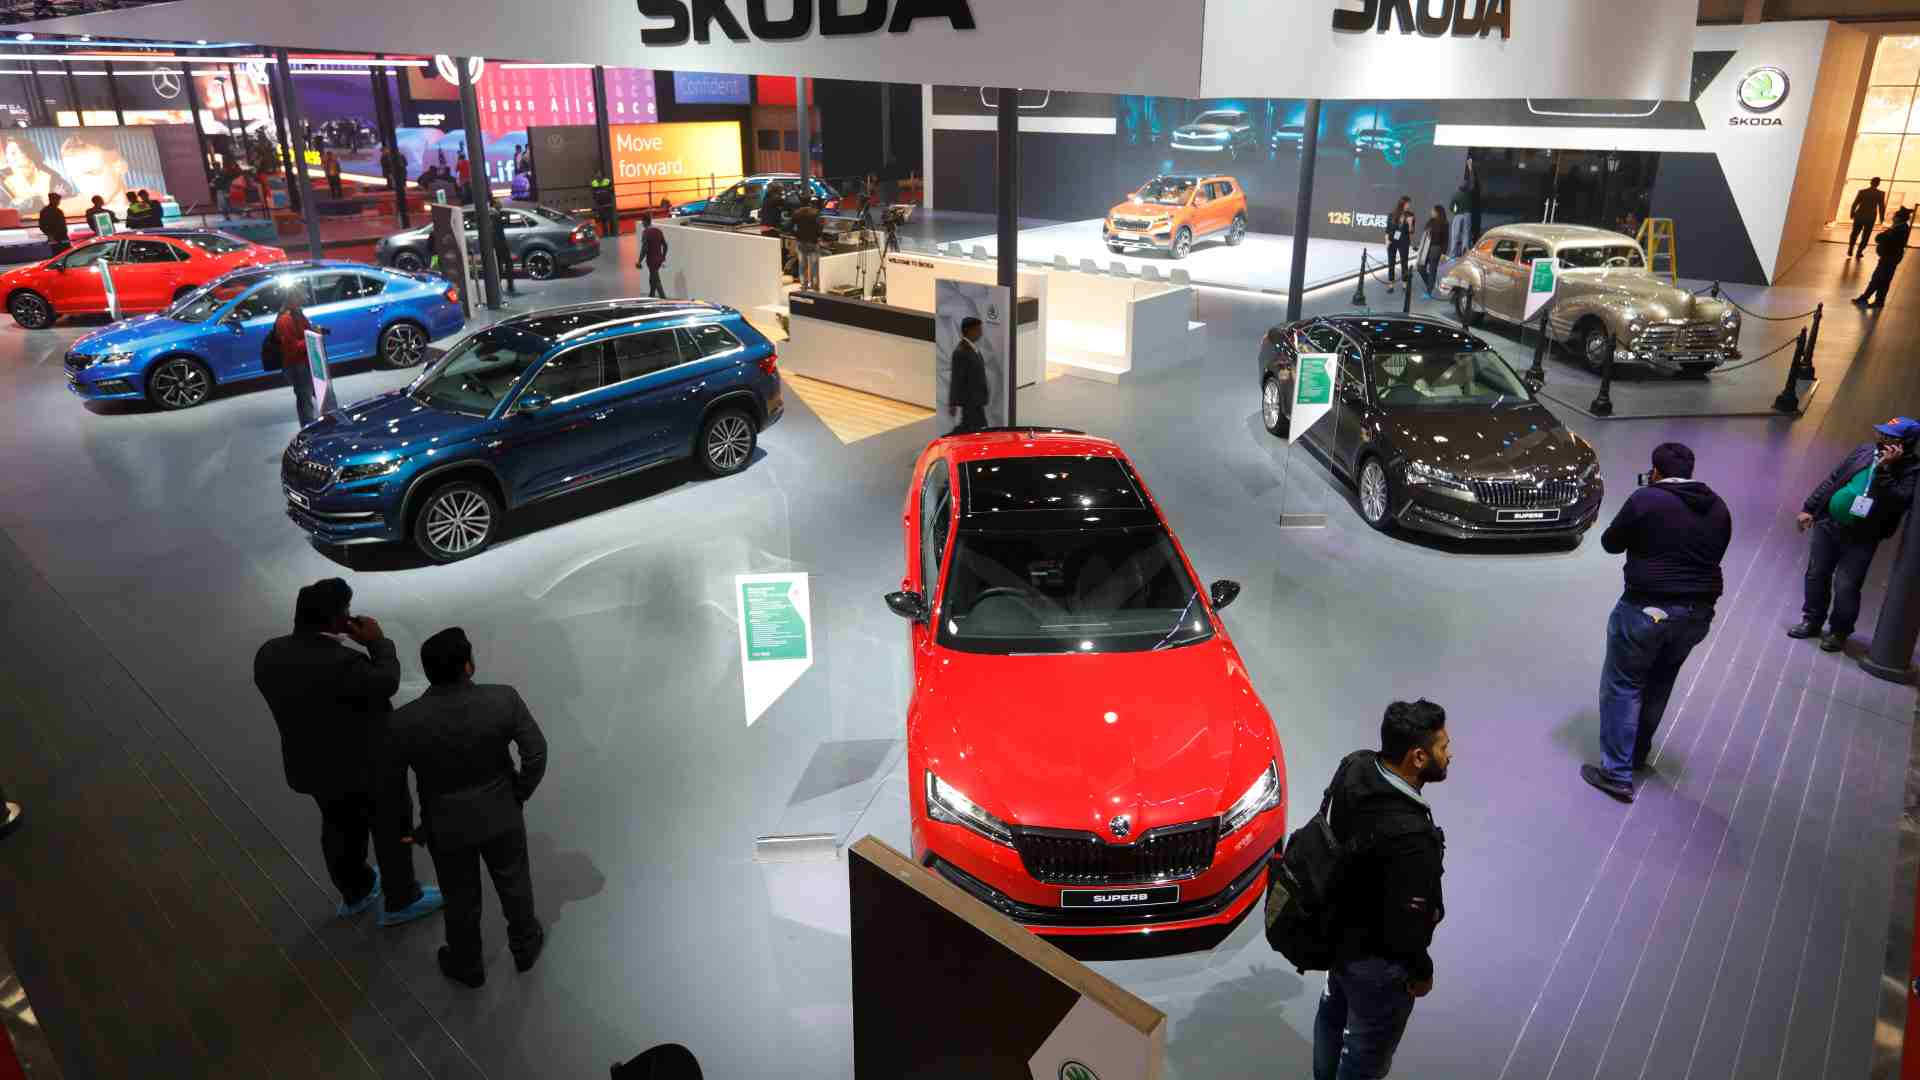 Auto Expo 2022 postponed, new car show times will be decided later this year- Technology News, Firstpost